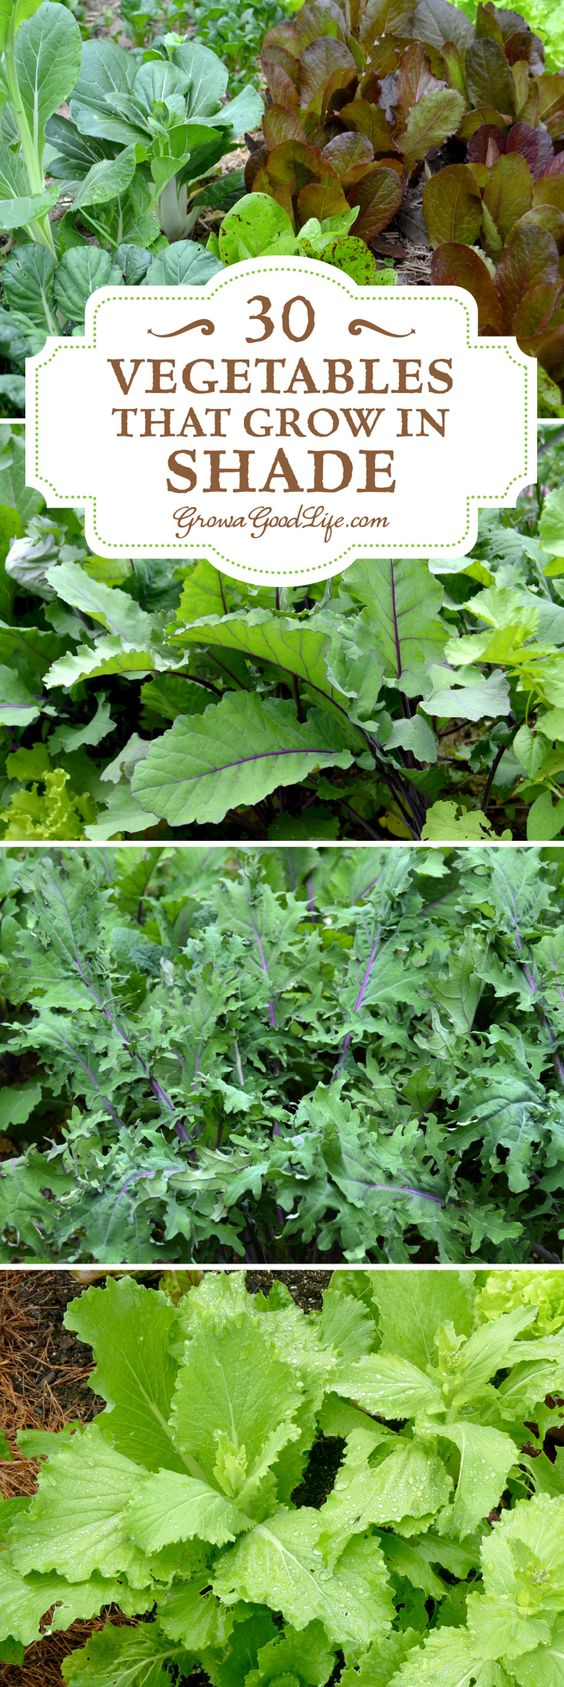 30 Vegetables That Grow In Shade Gardens Summer And